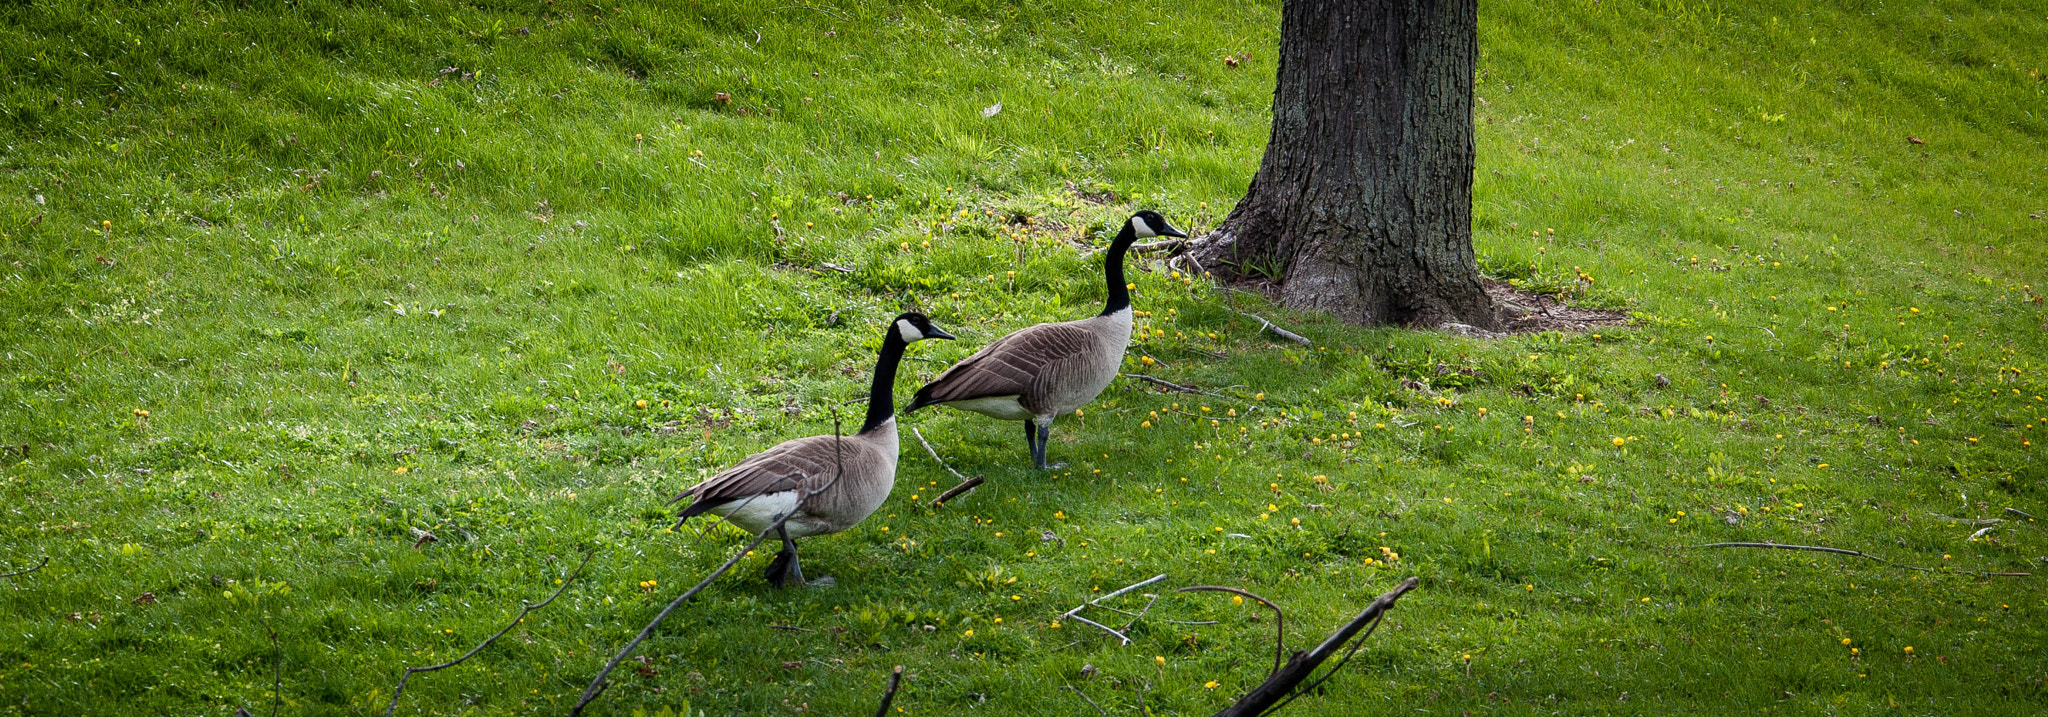 Photograph Geese by Nick Tsouroullis on 500px